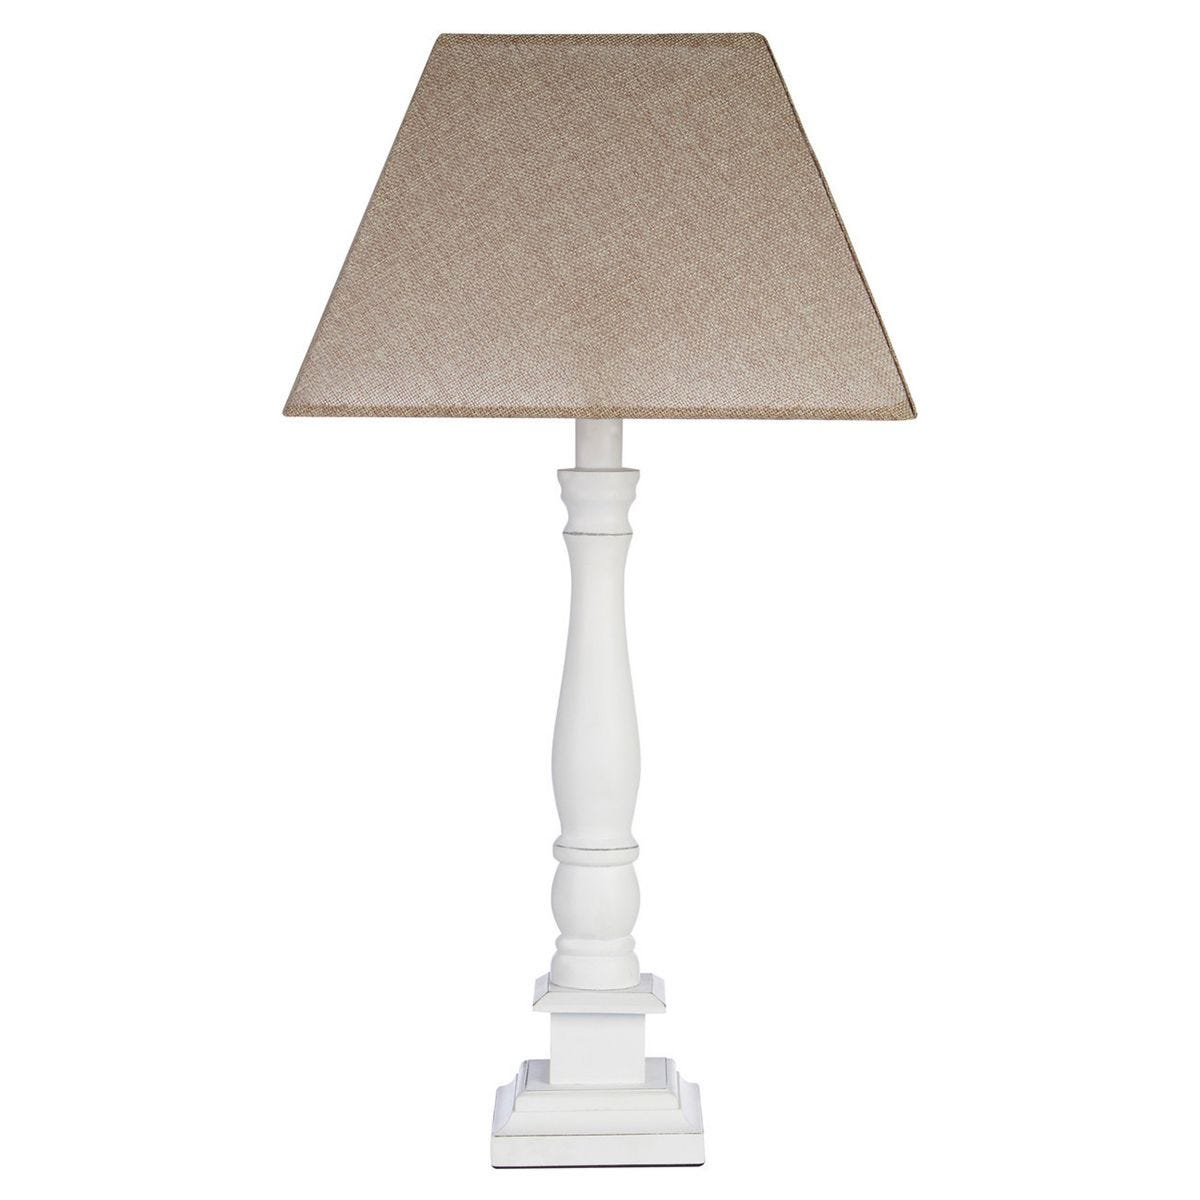 Table Lamp - White Wood Candlestick Base/Beige Shade